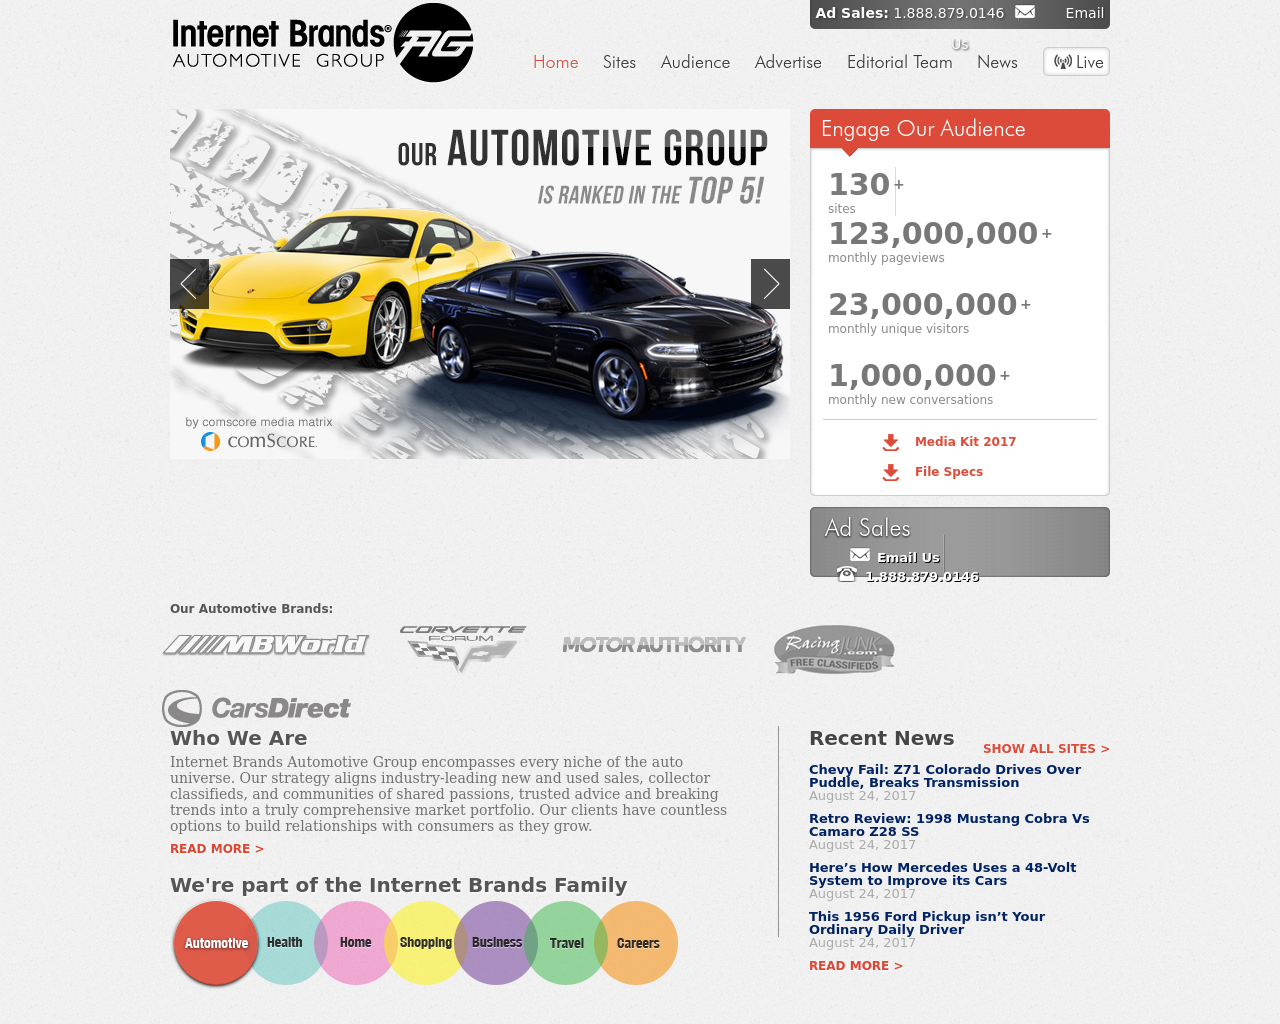 Internet-Brands-Automotive-Group-Advertising-Reviews-Pricing